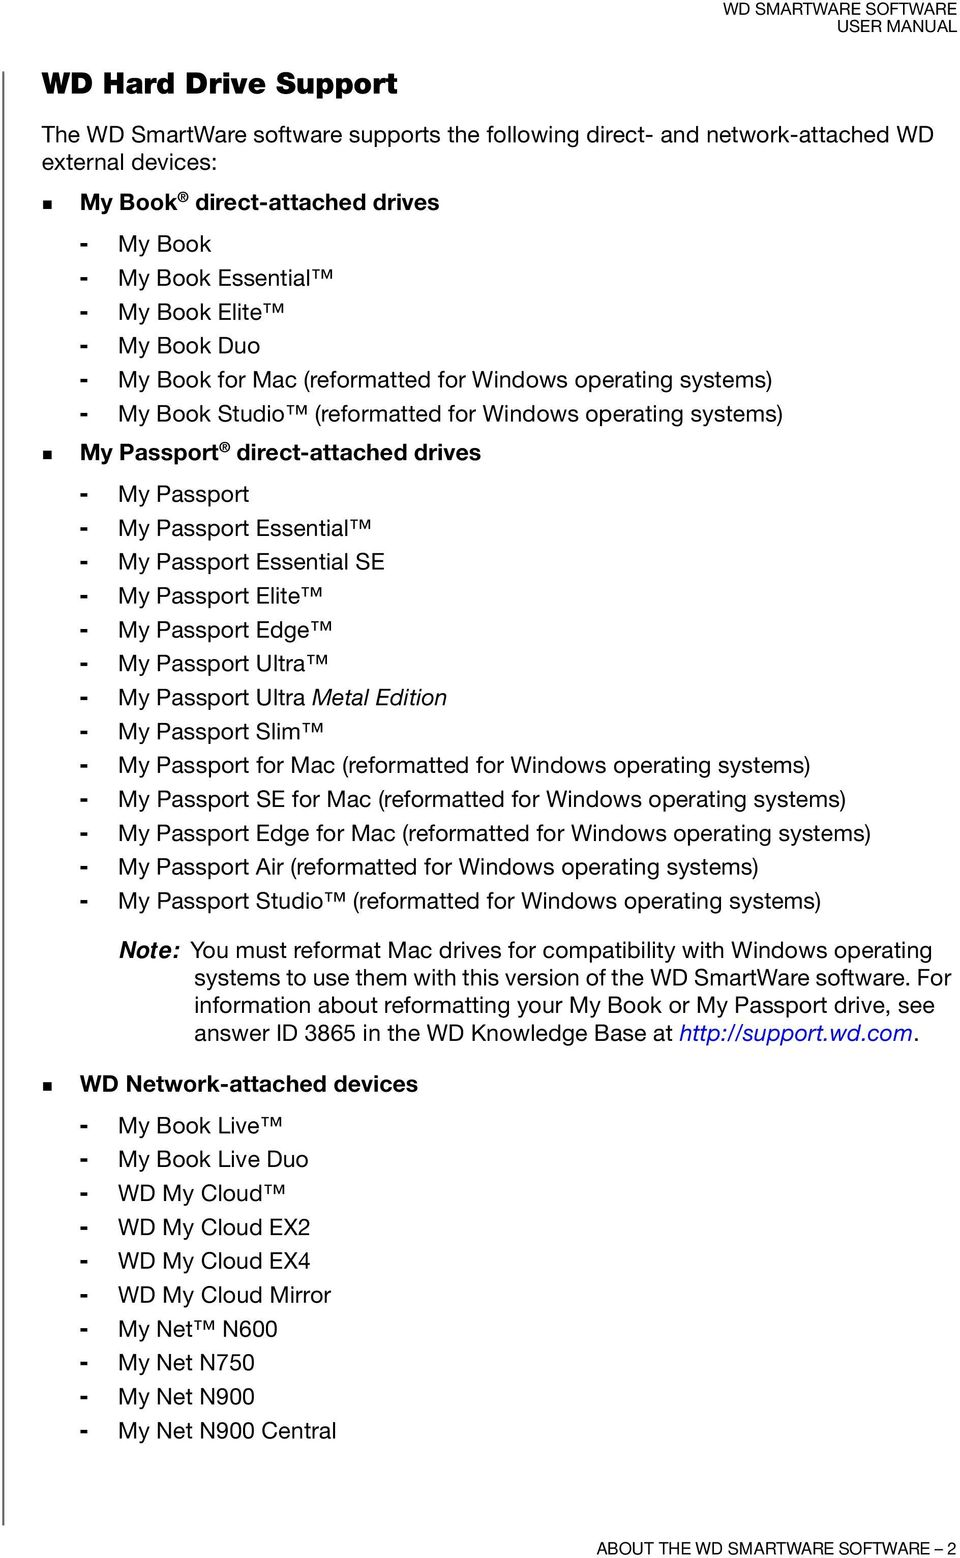 Essential - My Passport Essential SE - My Passport Elite - My Passport Edge - My Passport Ultra - My Passport Ultra Metal Edition - My Passport Slim - My Passport for Mac (reformatted for Windows